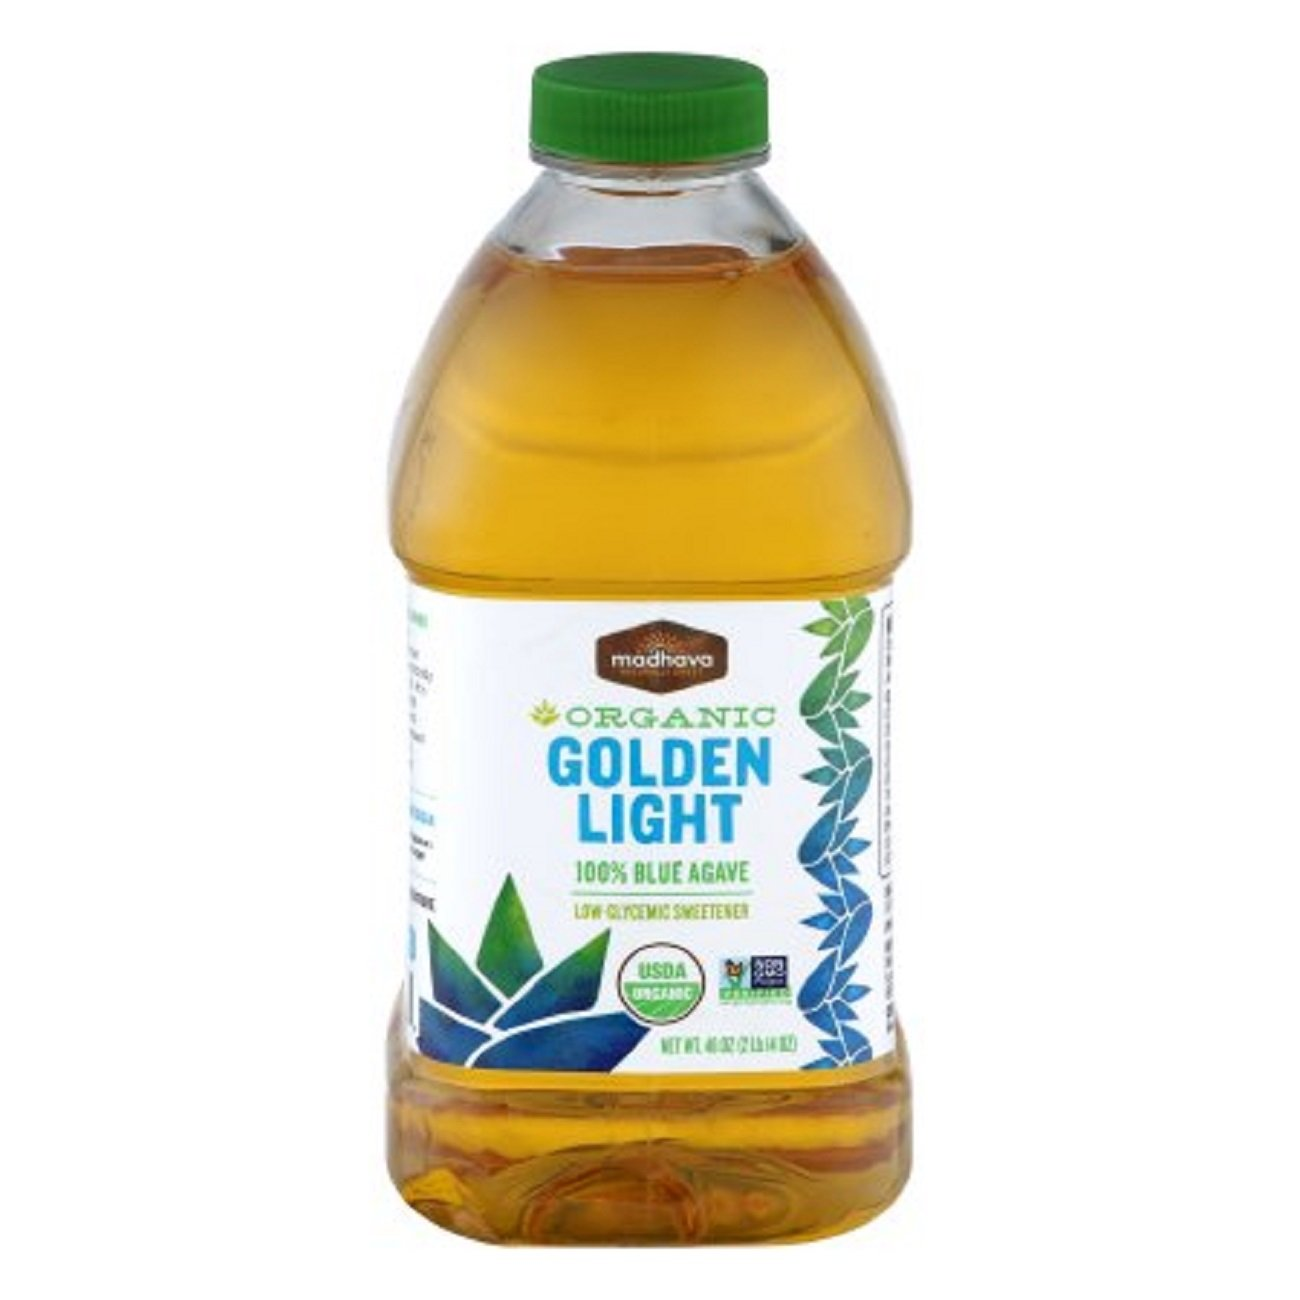 Natural Sweeteners Organic 100% Blue Agave Golden Light, 46.0 OZ